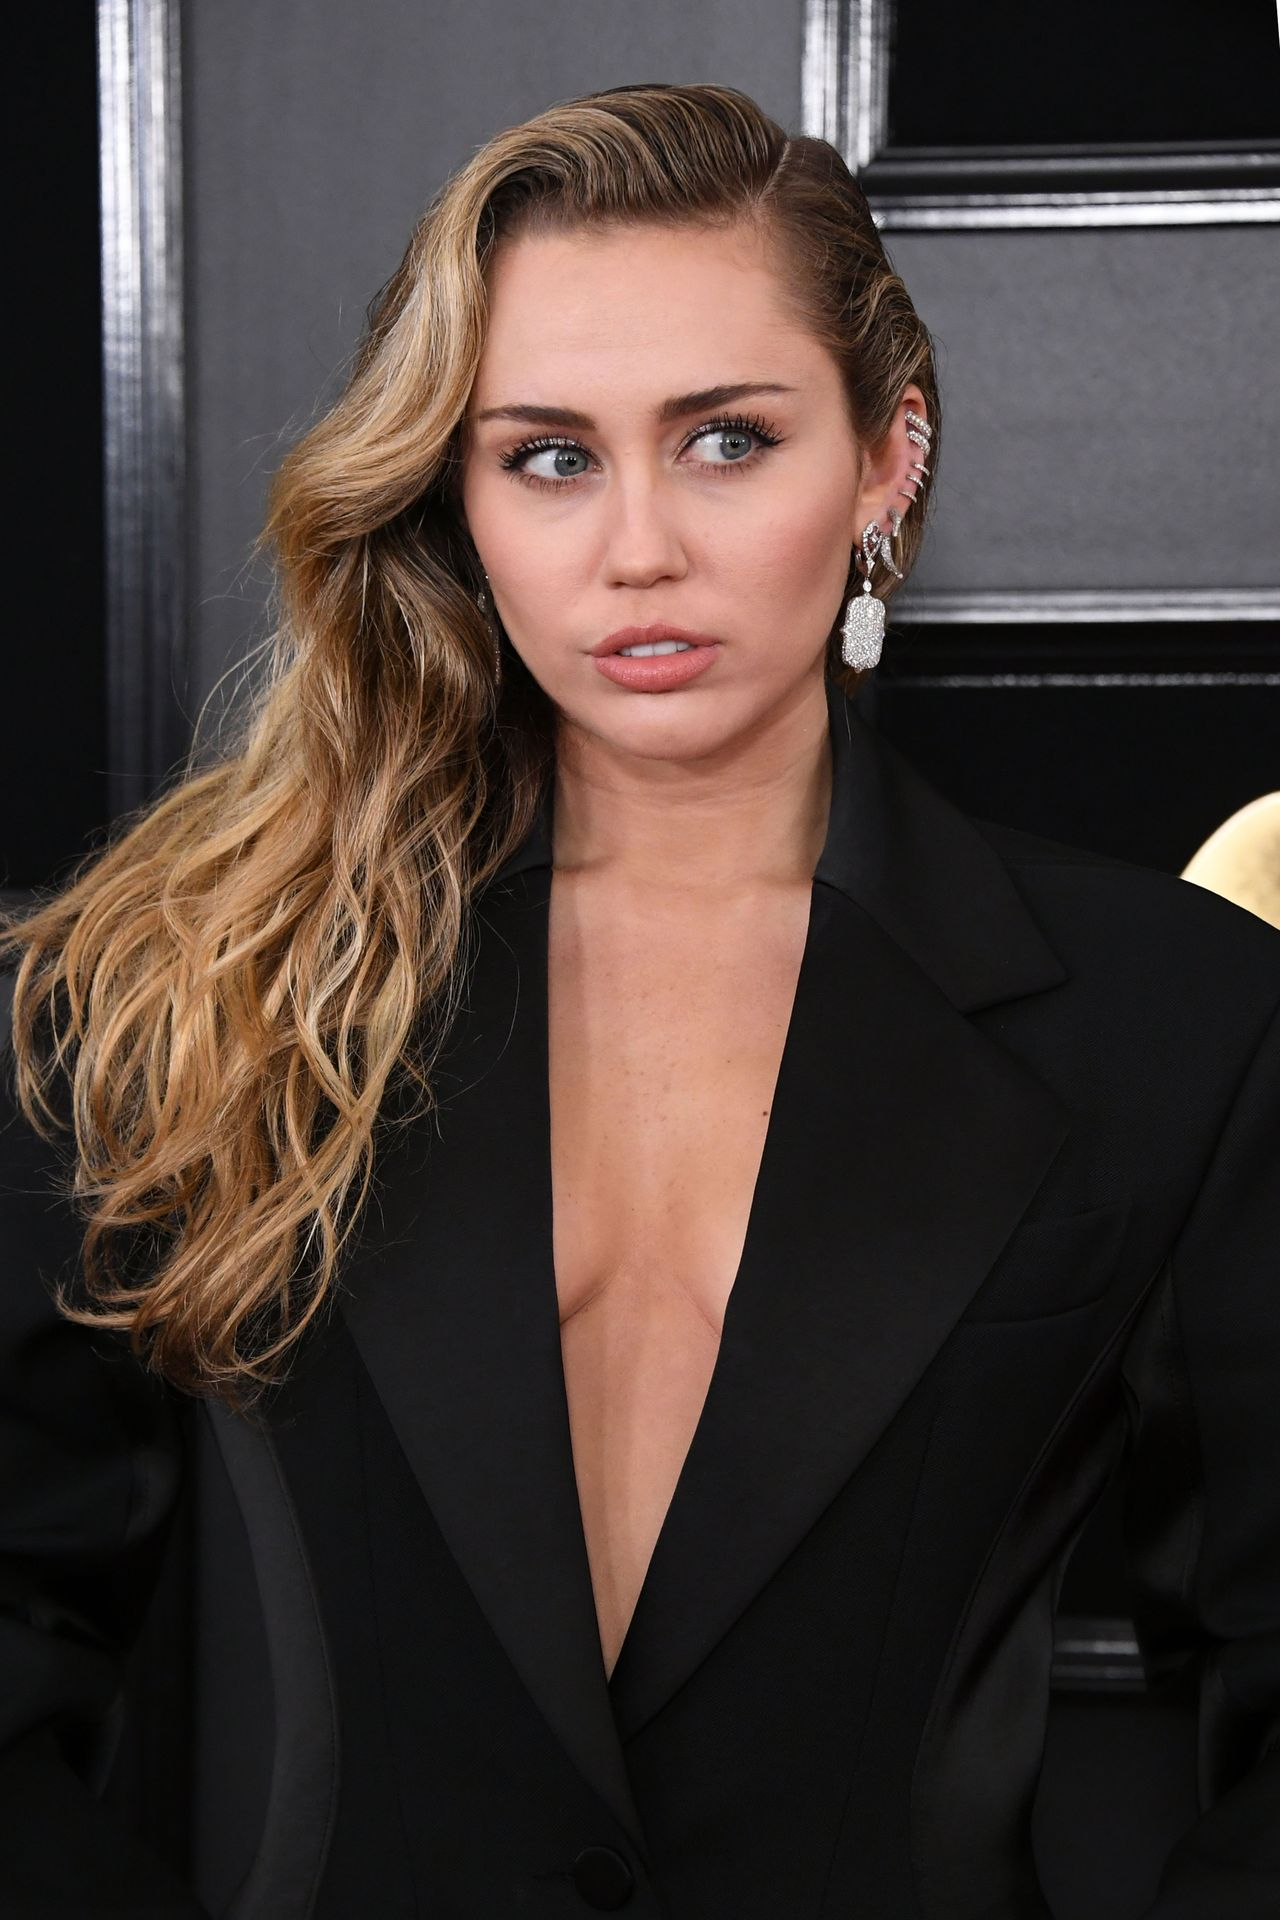 The Beautiful singer Miley Cyrus sexy has stamped the award ceremony with a black dress with a chest detachable. Pictures of famous women wearing the sexiest.